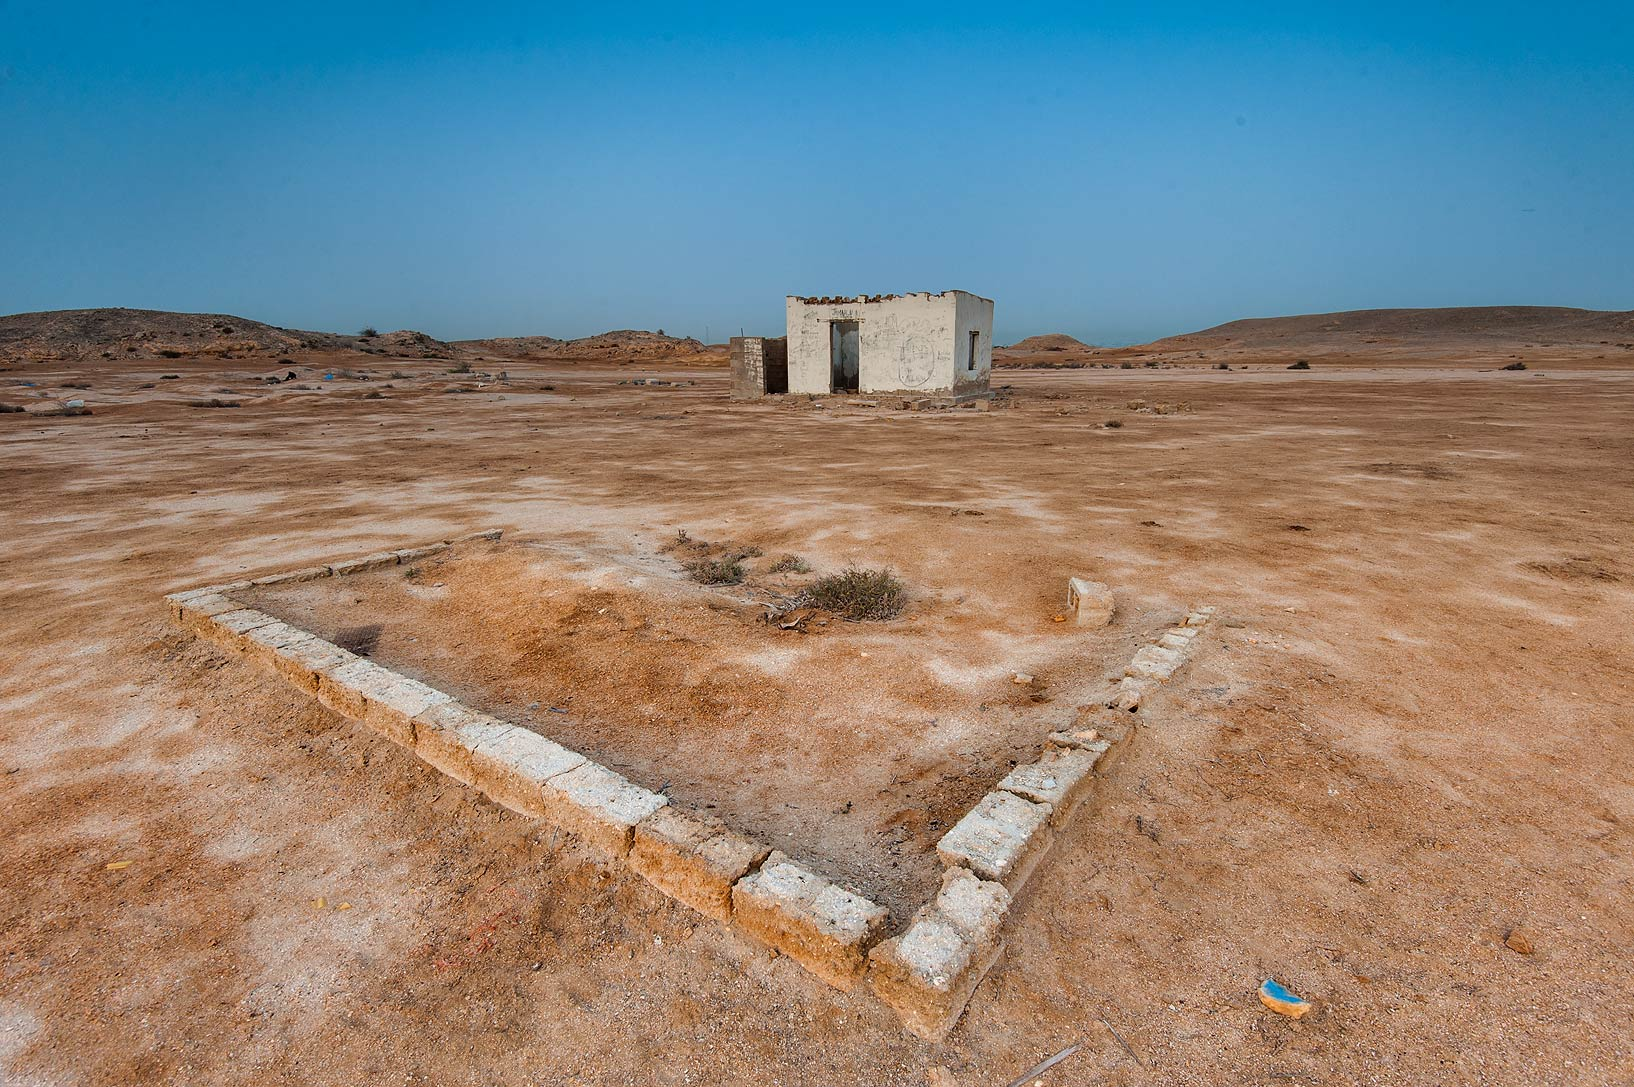 Ruins of a camp of archeological expedition on...Jazirat Bin Ghanim). Al Khor, Qatar